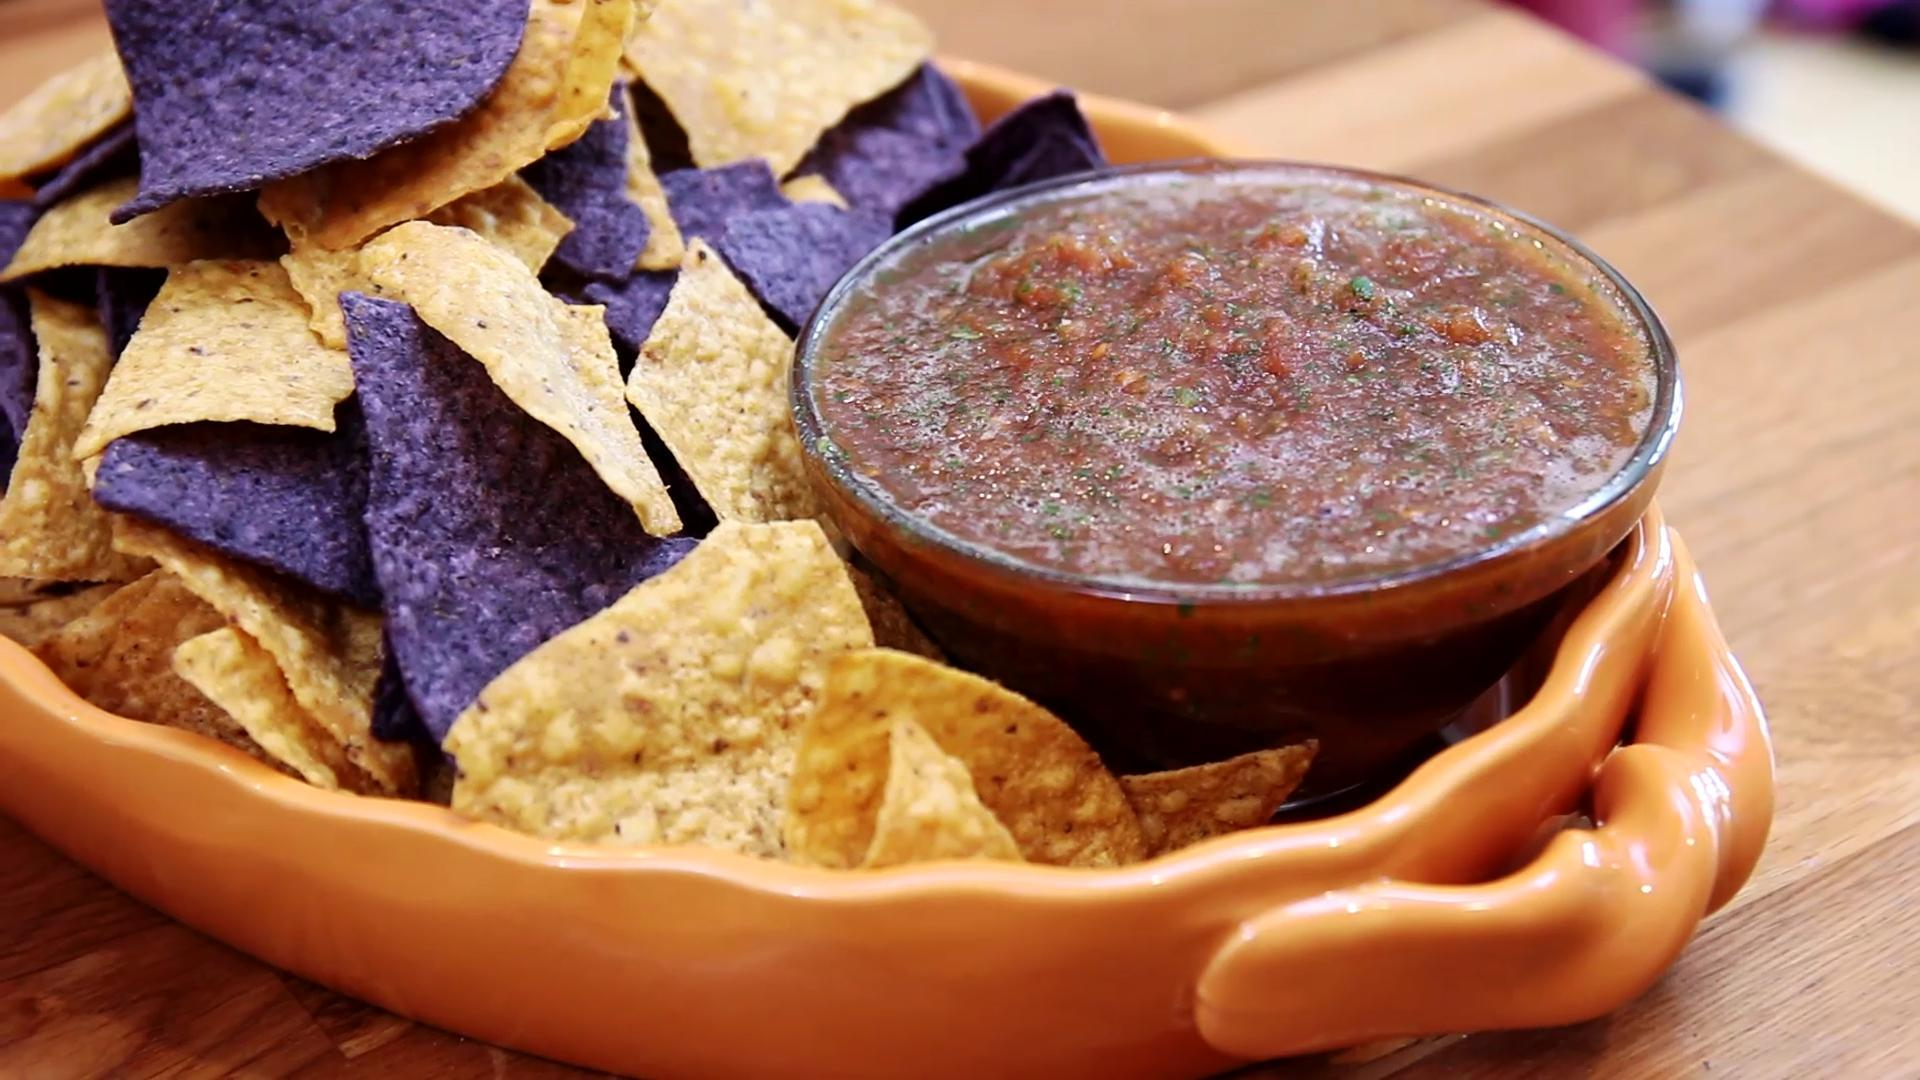 Authentic Mexican Restaurant-Style Salsa Recipe